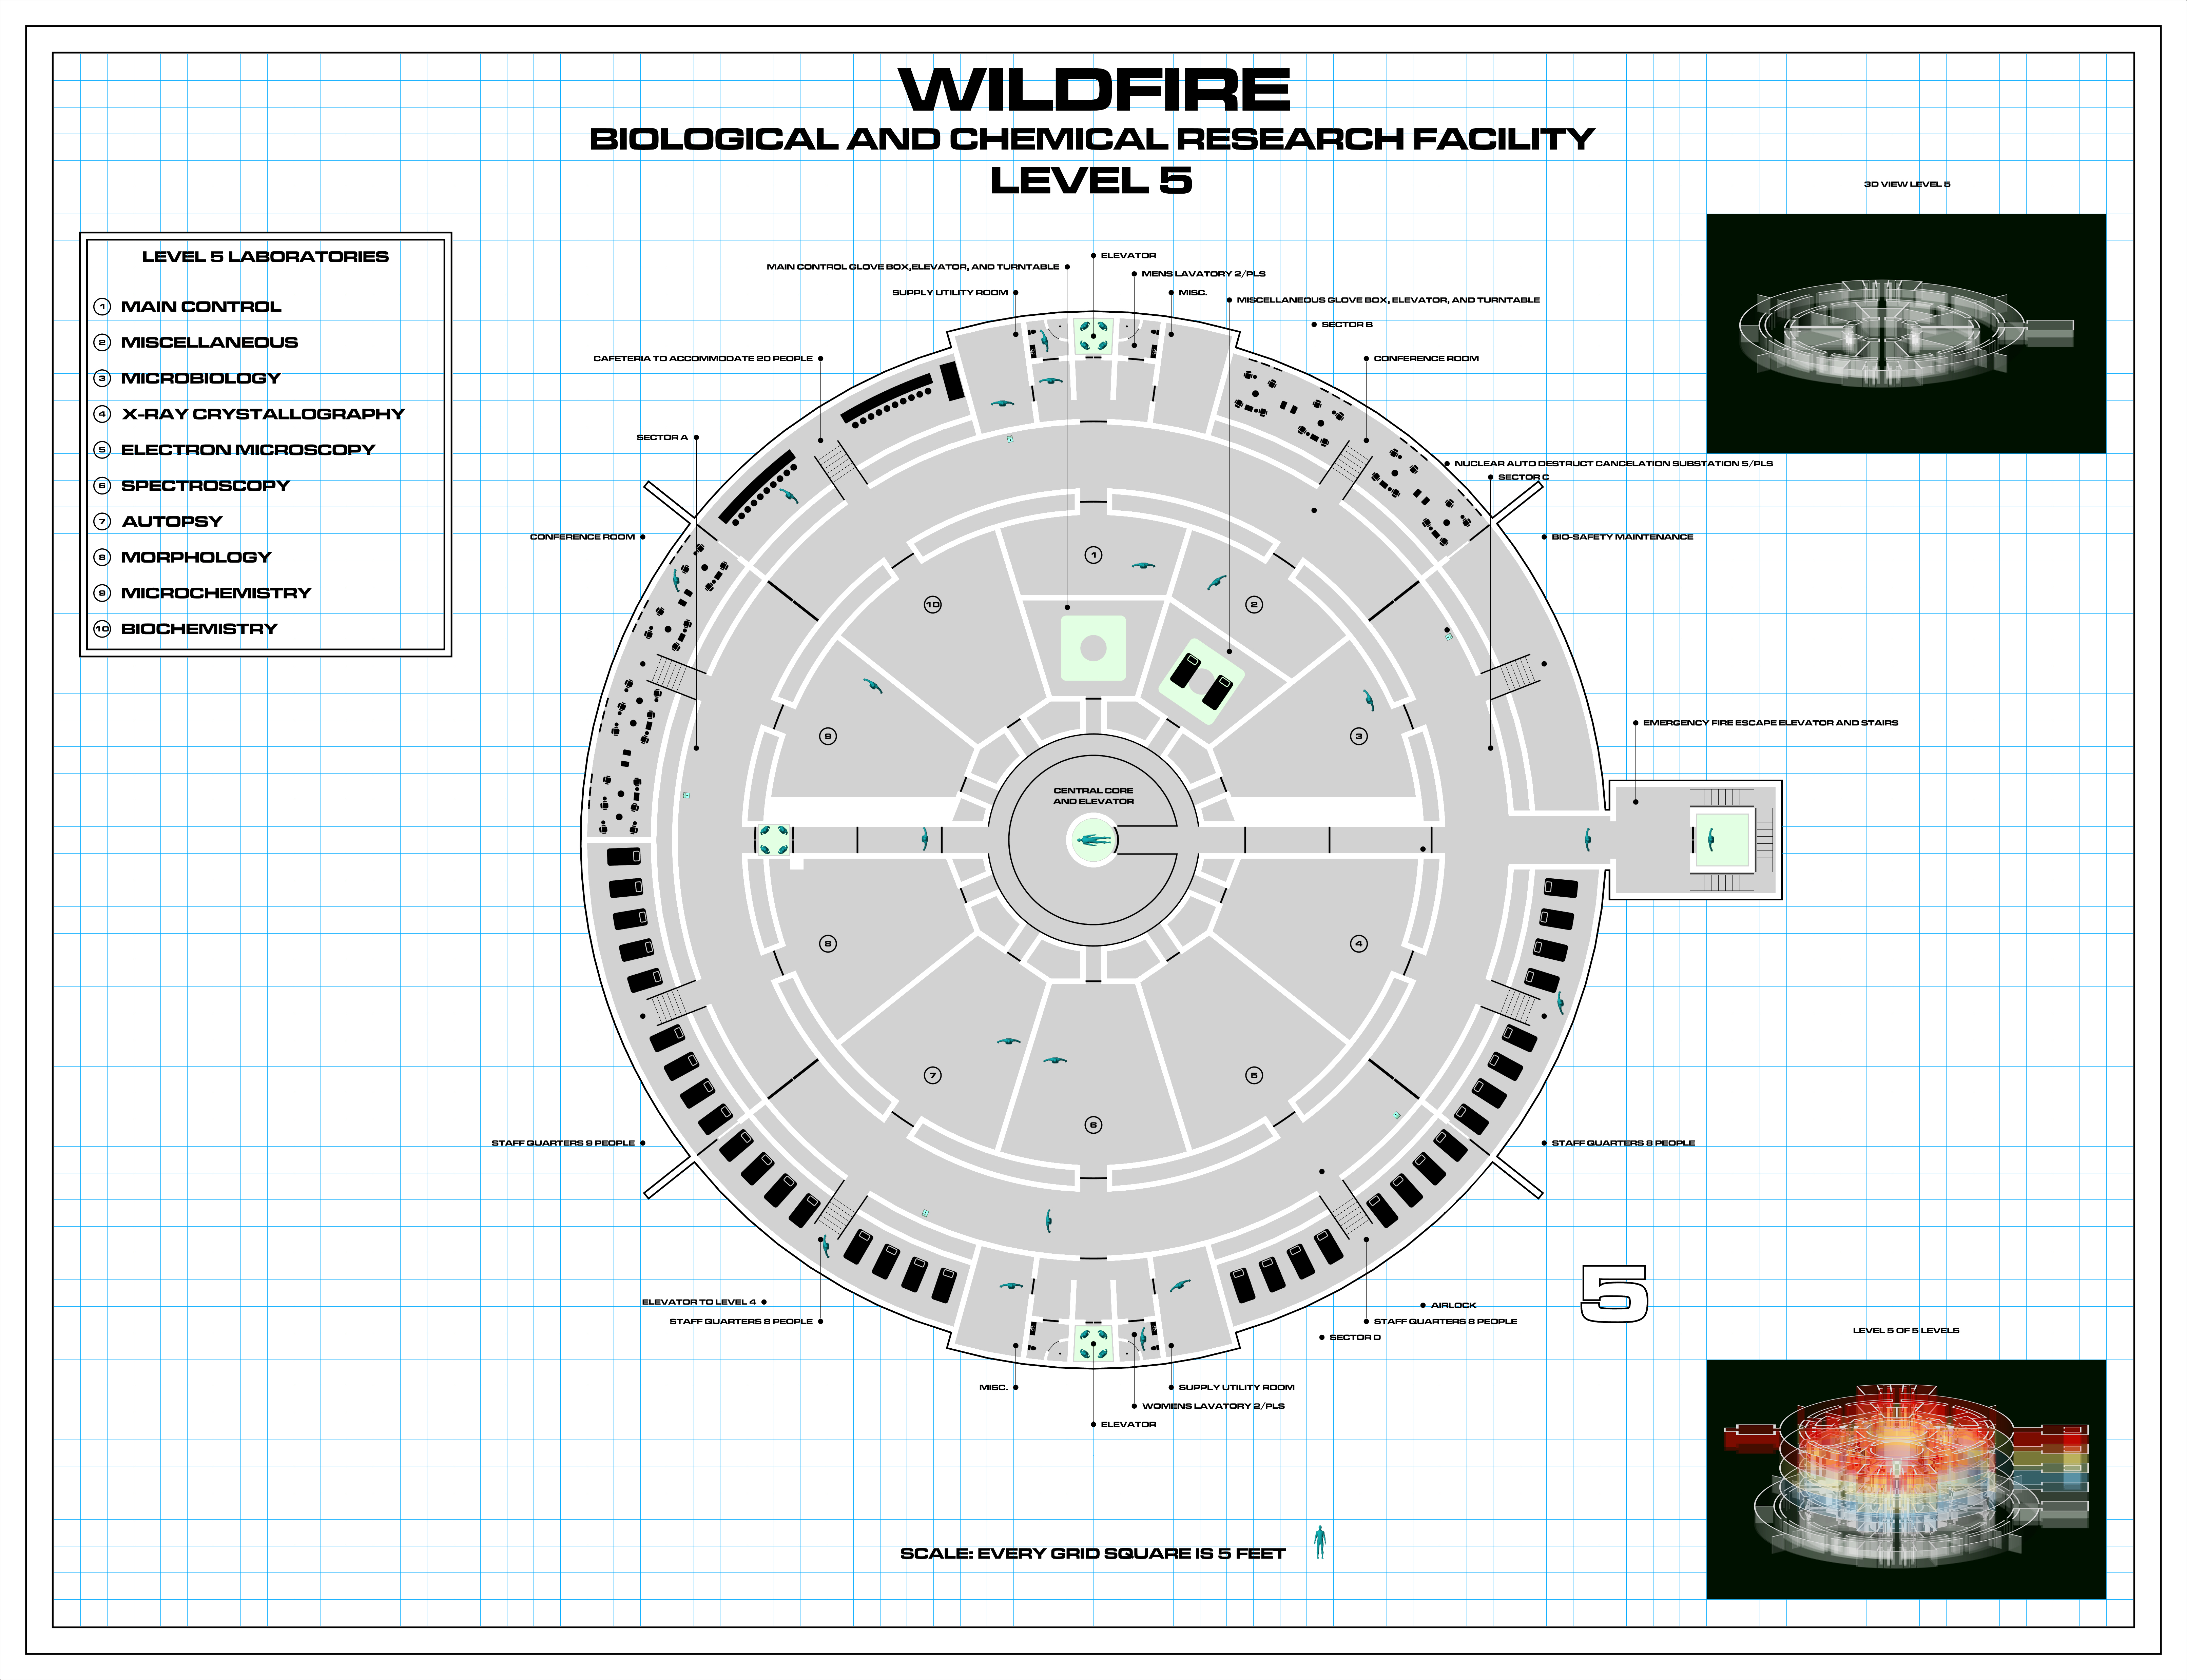 the andromeda strain wildfire complex (fan made) rpf costume and Andromeda Strain 2009 view attachment the andromeda strain wildfire facility level 1 jpg view attachment the andromeda strain wildfire facility level 2 jpg view attachment the